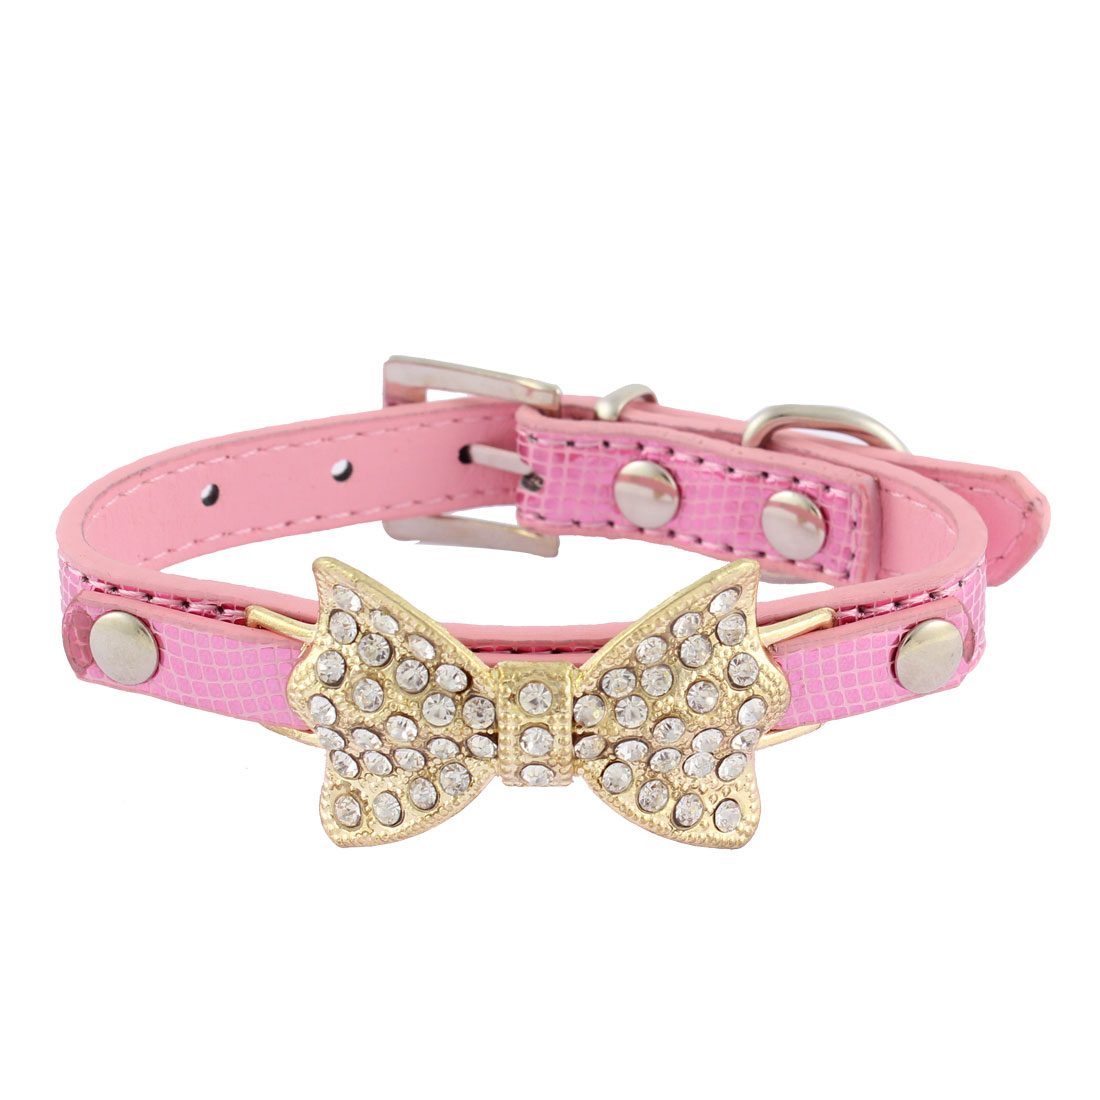 Alligator Pattern Bow Detail Rhinestone Decor Pet Dog Kitty Collar 21.5-28cm Pink